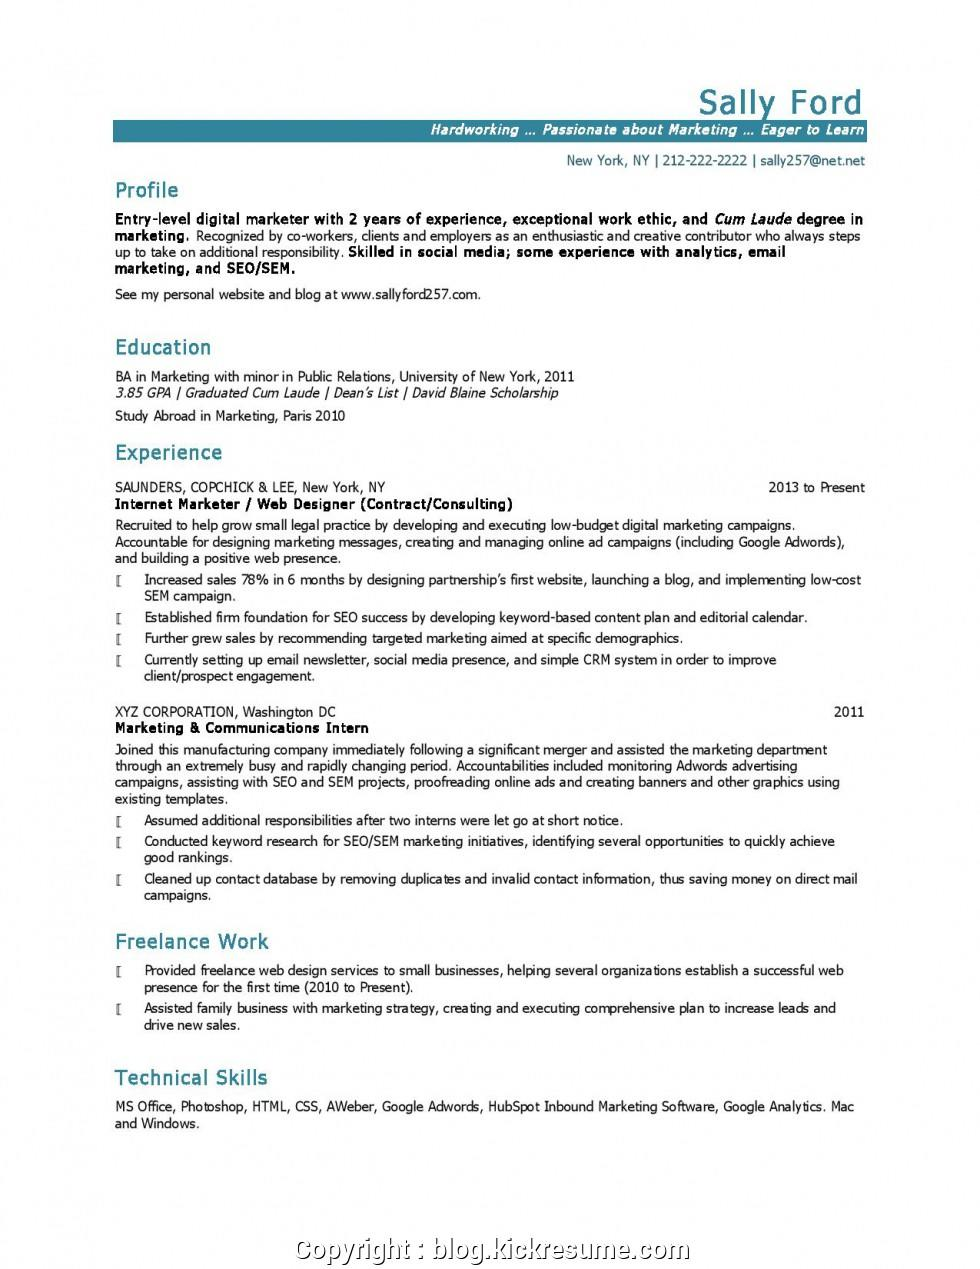 21 Excellent Entry Level Marketing Resume with Gallery